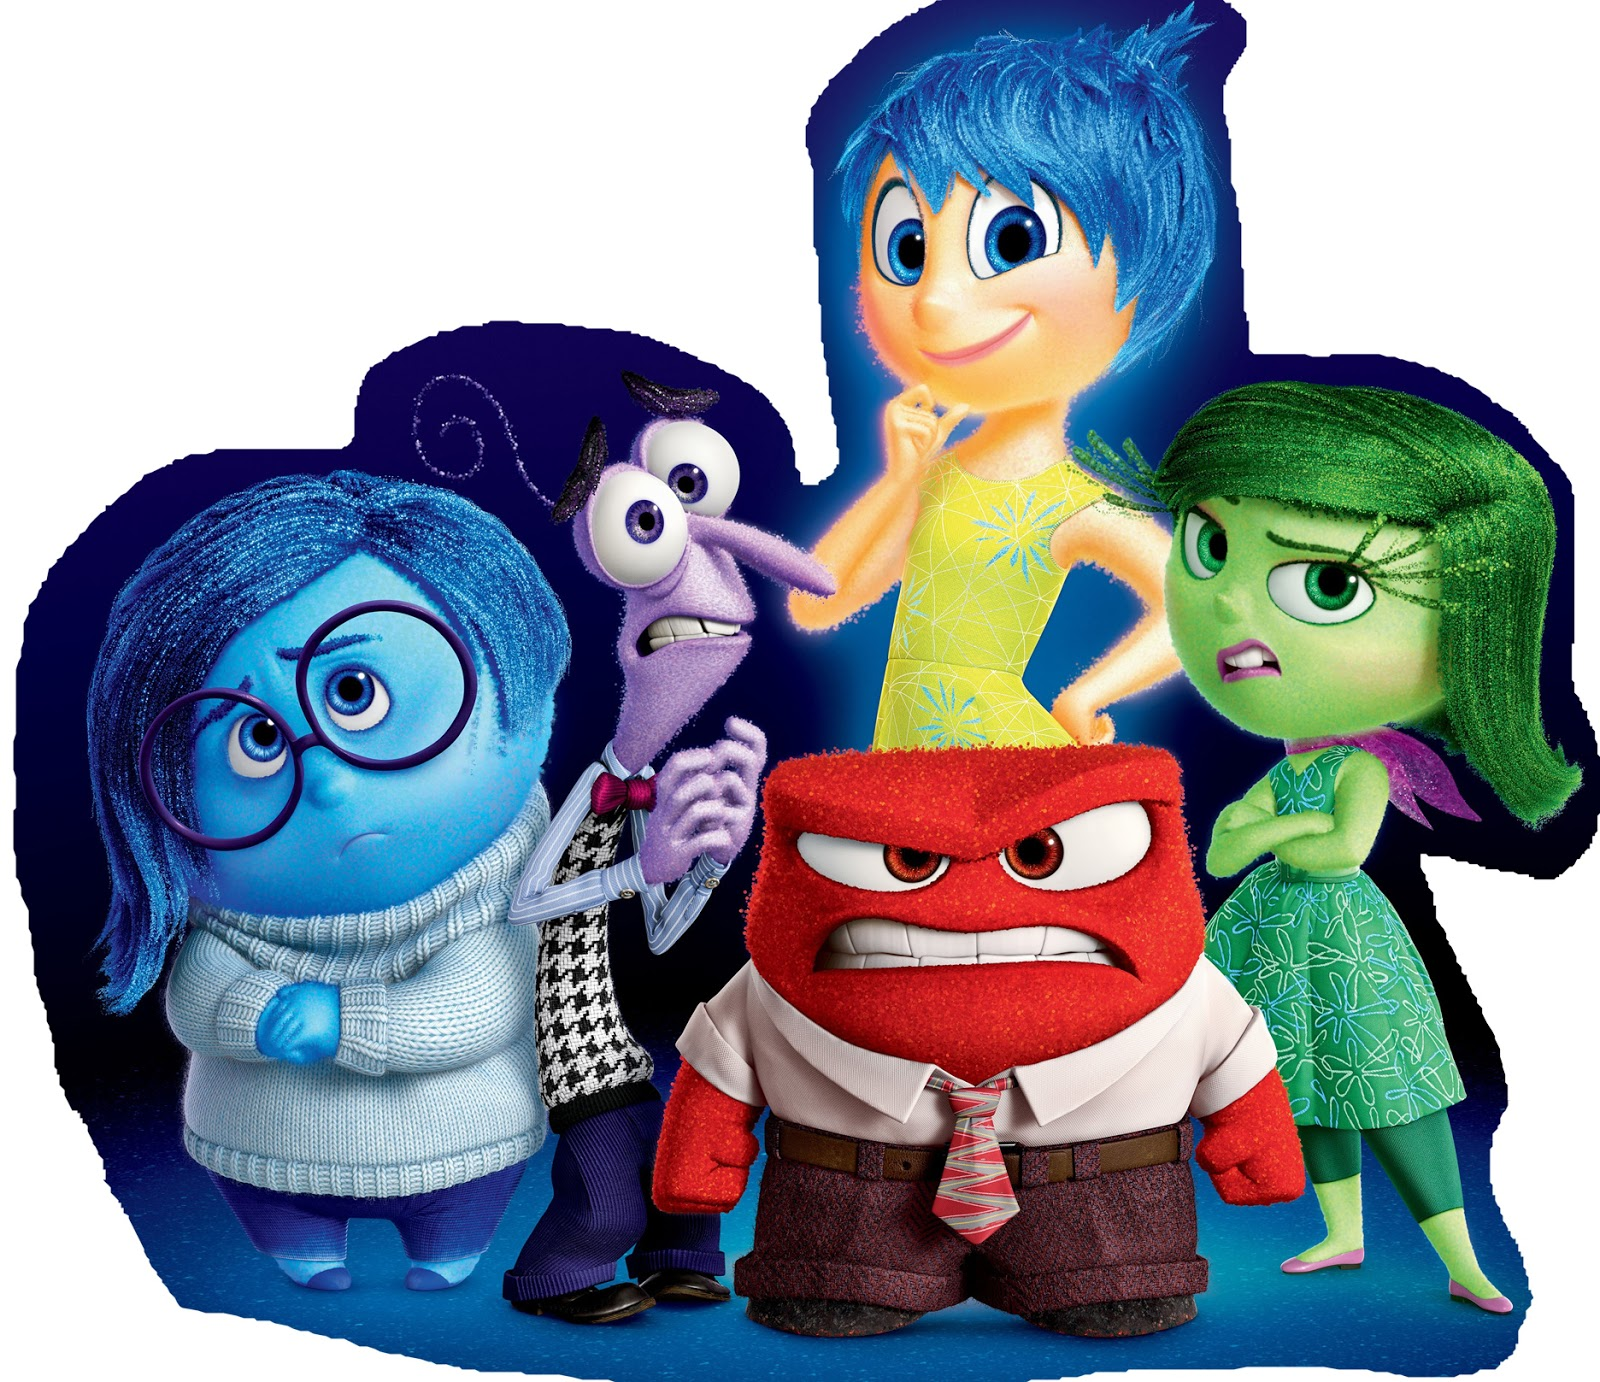 Birthday Of Inside Out Free Printable Image And Free